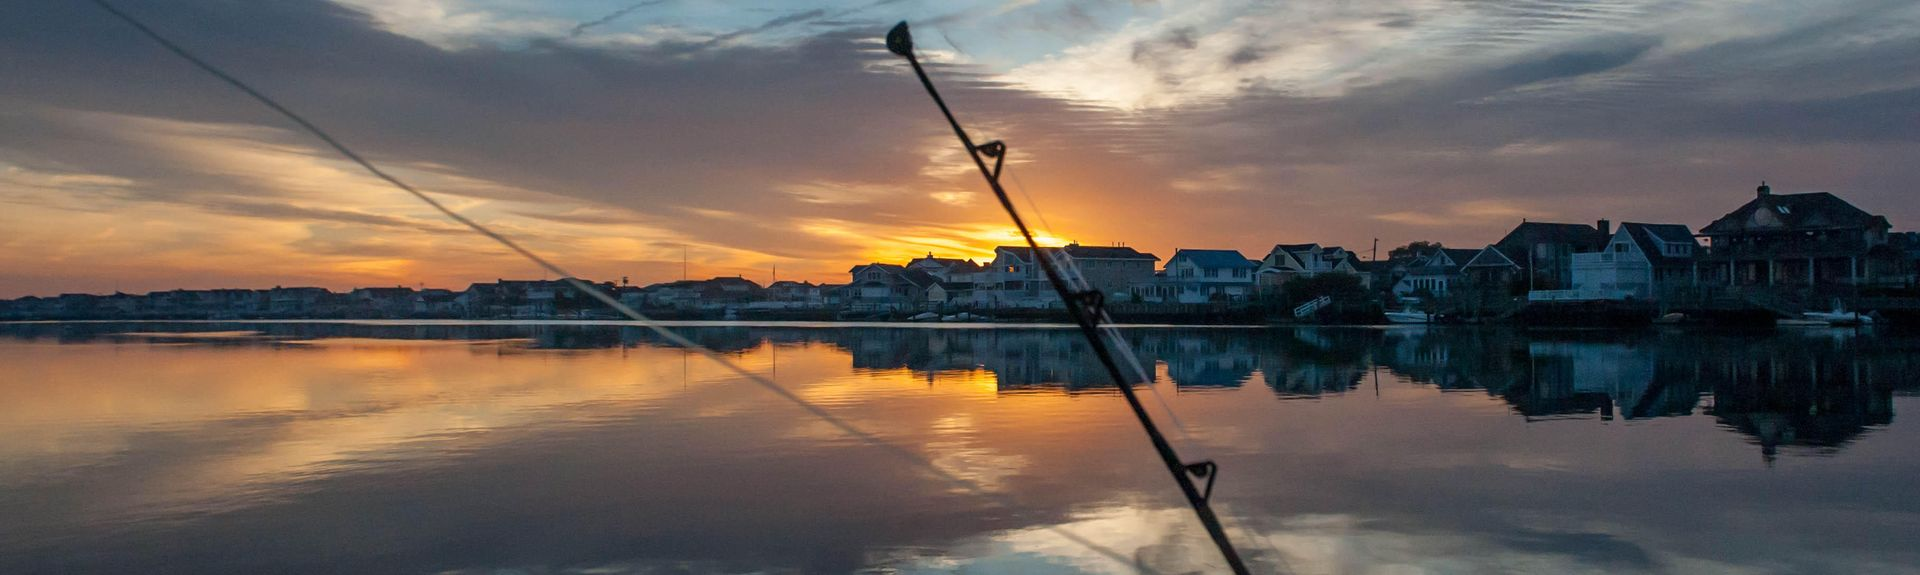 Stone Harbor, New Jersey, United States of America